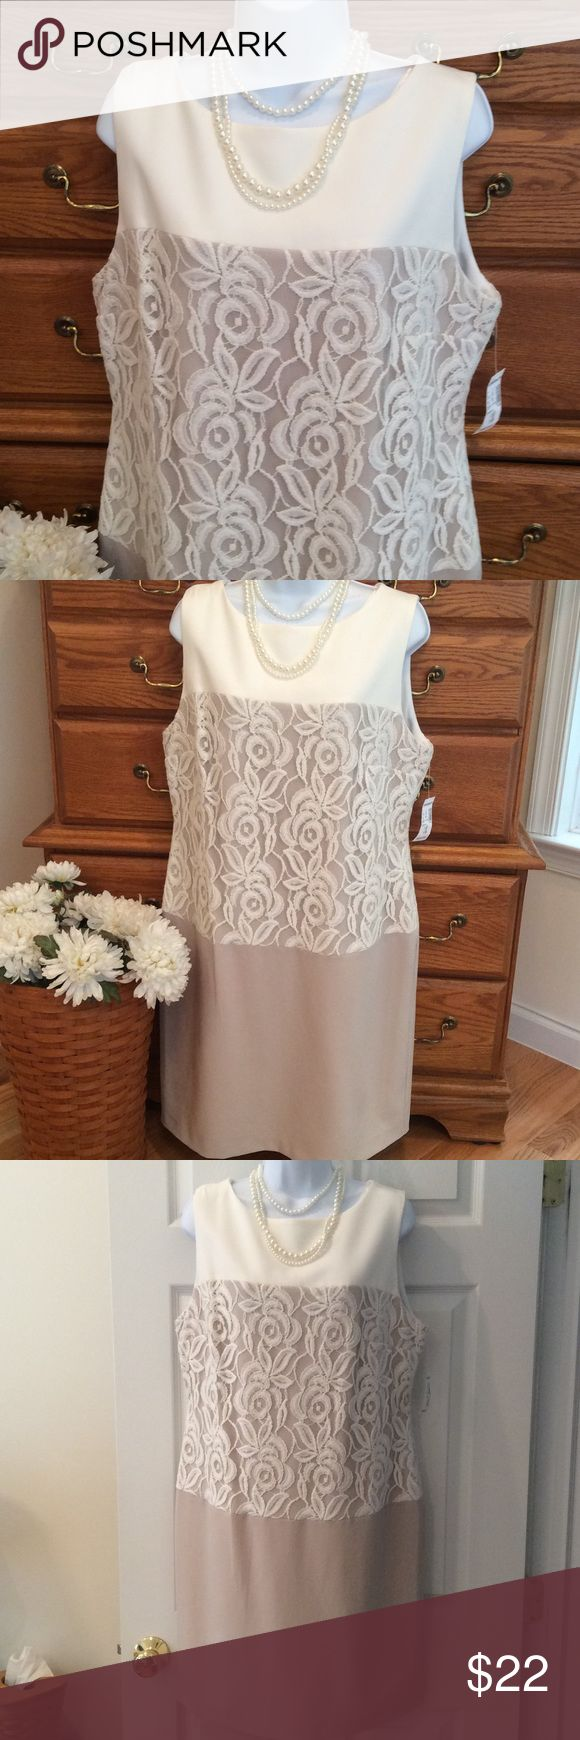 """Dress Barn Gorgeous Ivory/Tan Lace Dress NWT Body is 95% polyester and 5% spandex.  The cream or ivory  lining underneath is 100% polyester.  Approximately 37"""" in length and when laid flat and measured from armpit to armpit it is 21"""" across.  A cream Lace overlays the beige color. Zipper in the back.  Brand new with tags. Dress Barn Dresses Midi"""